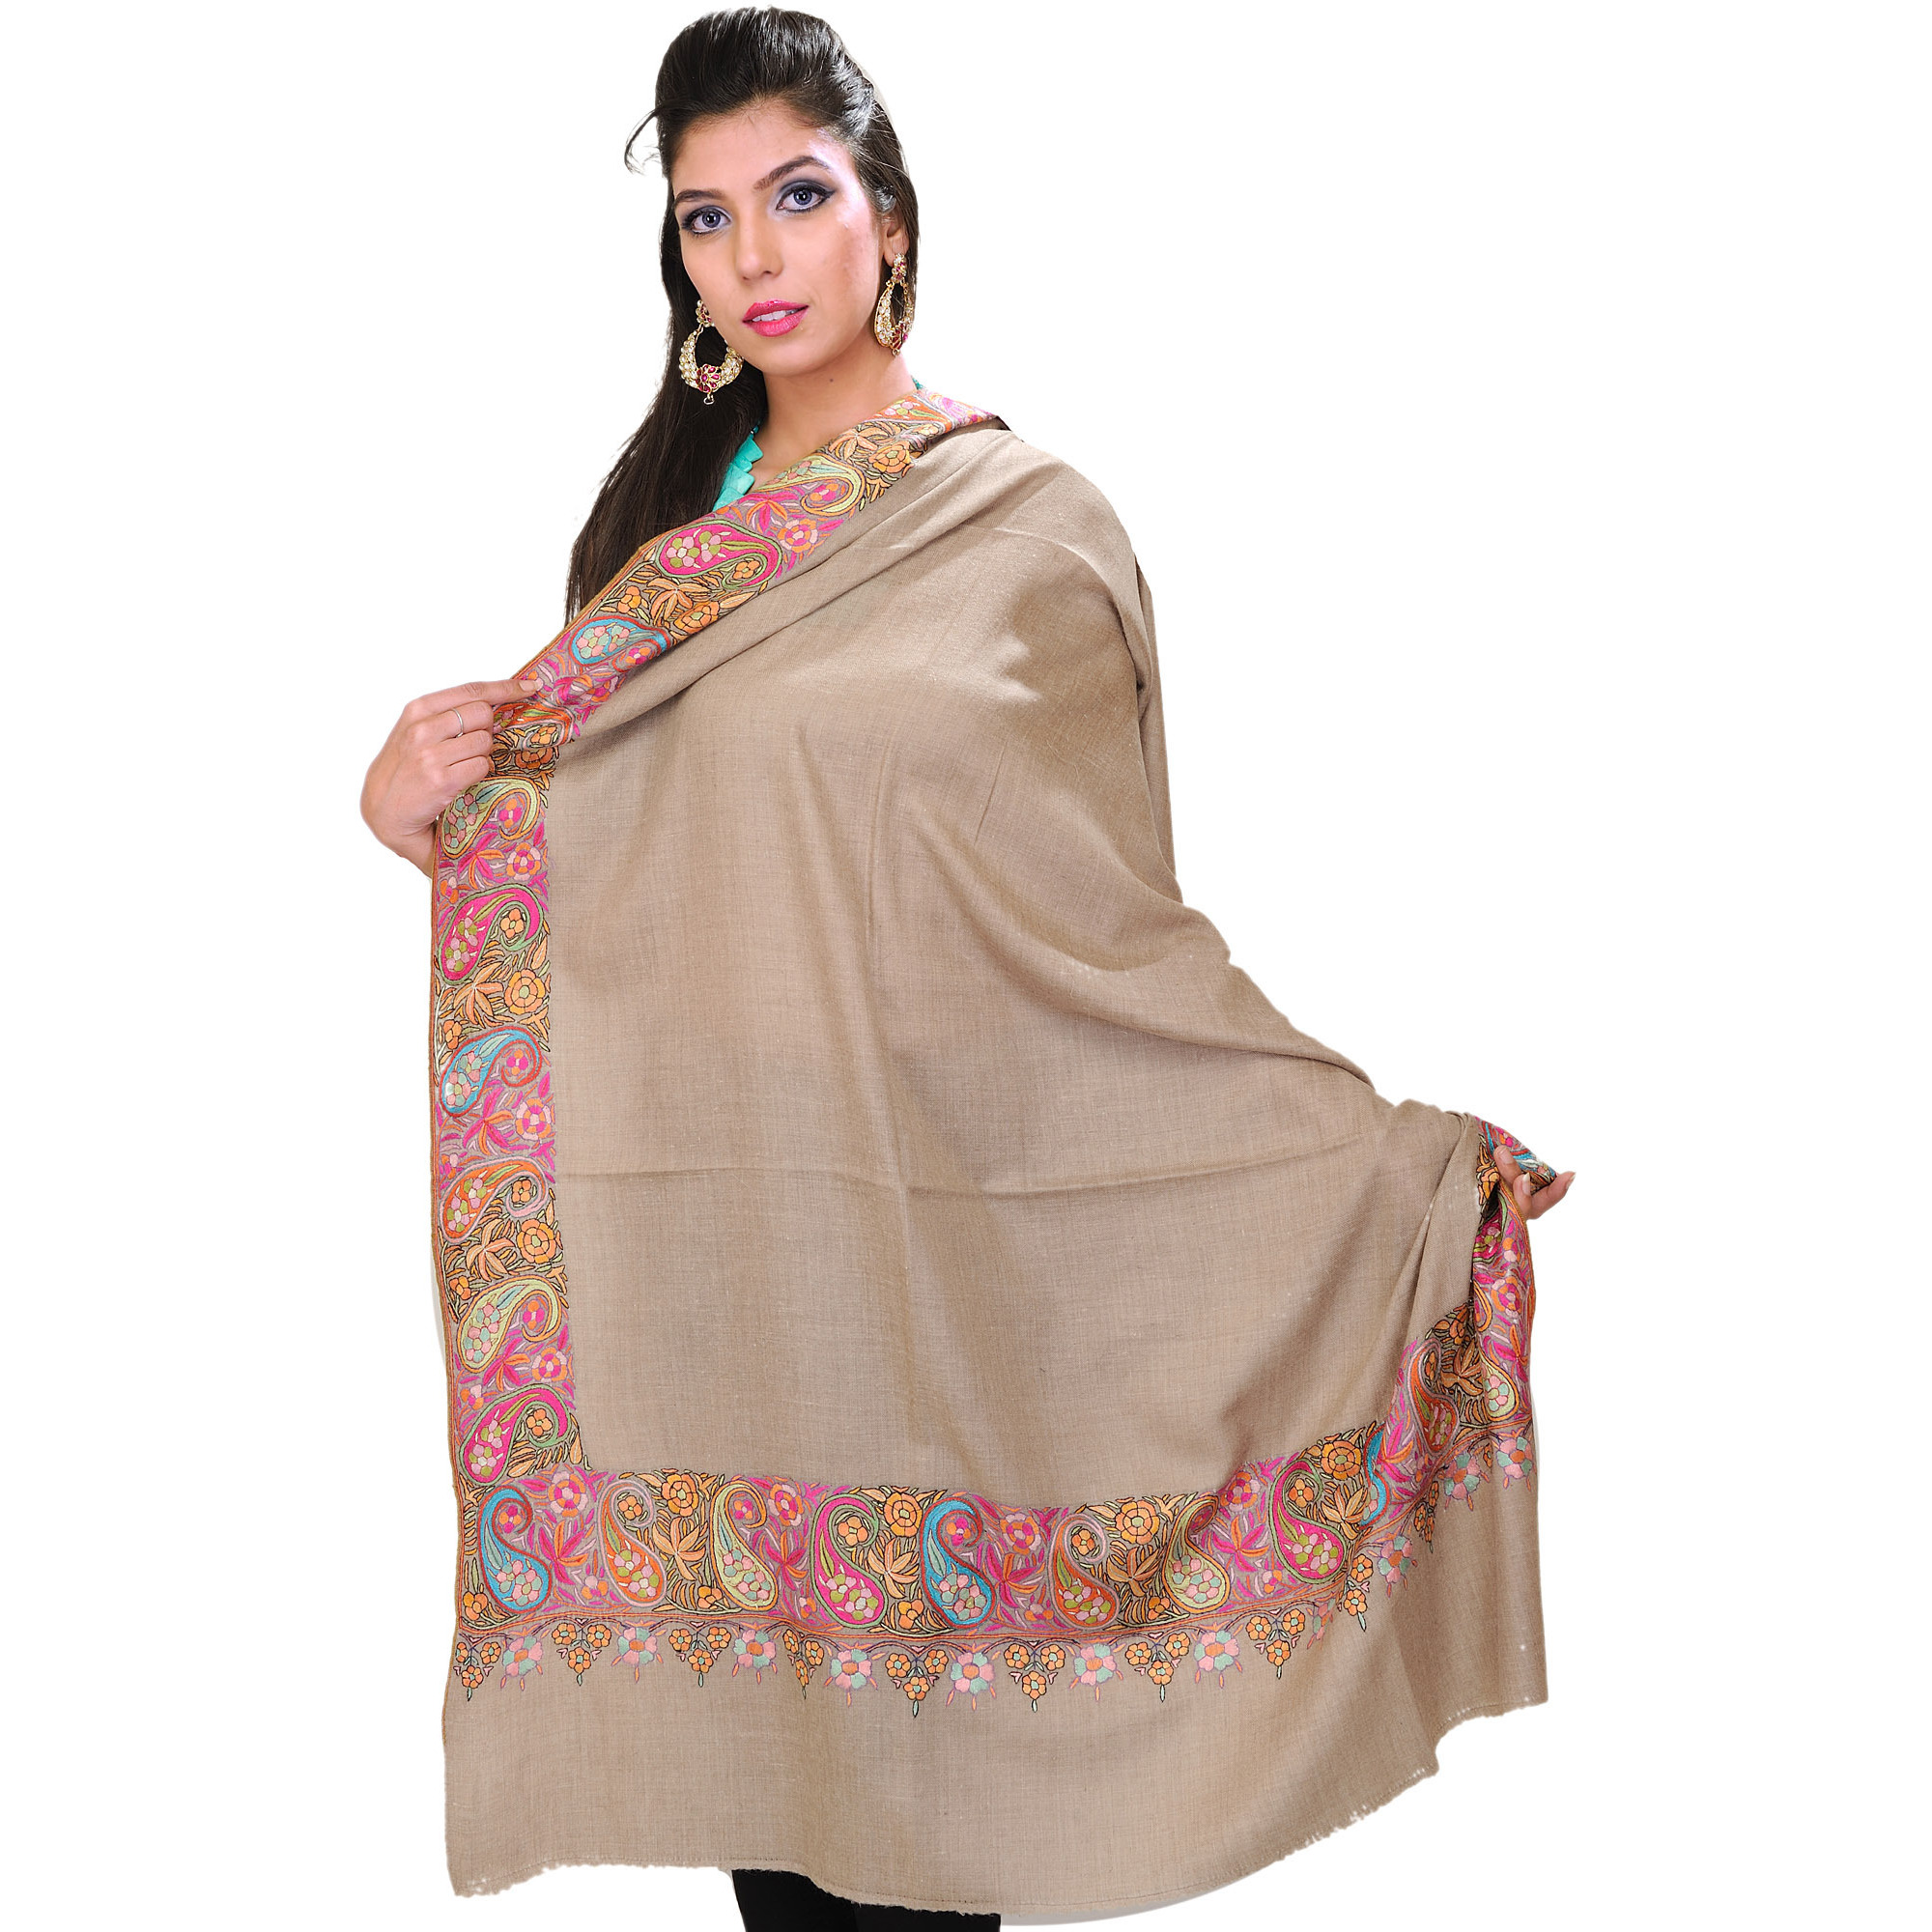 Warm-Taupe Pure Pashmina Shawl from Kashmir with Hand-Embroidered Paisleys on Border